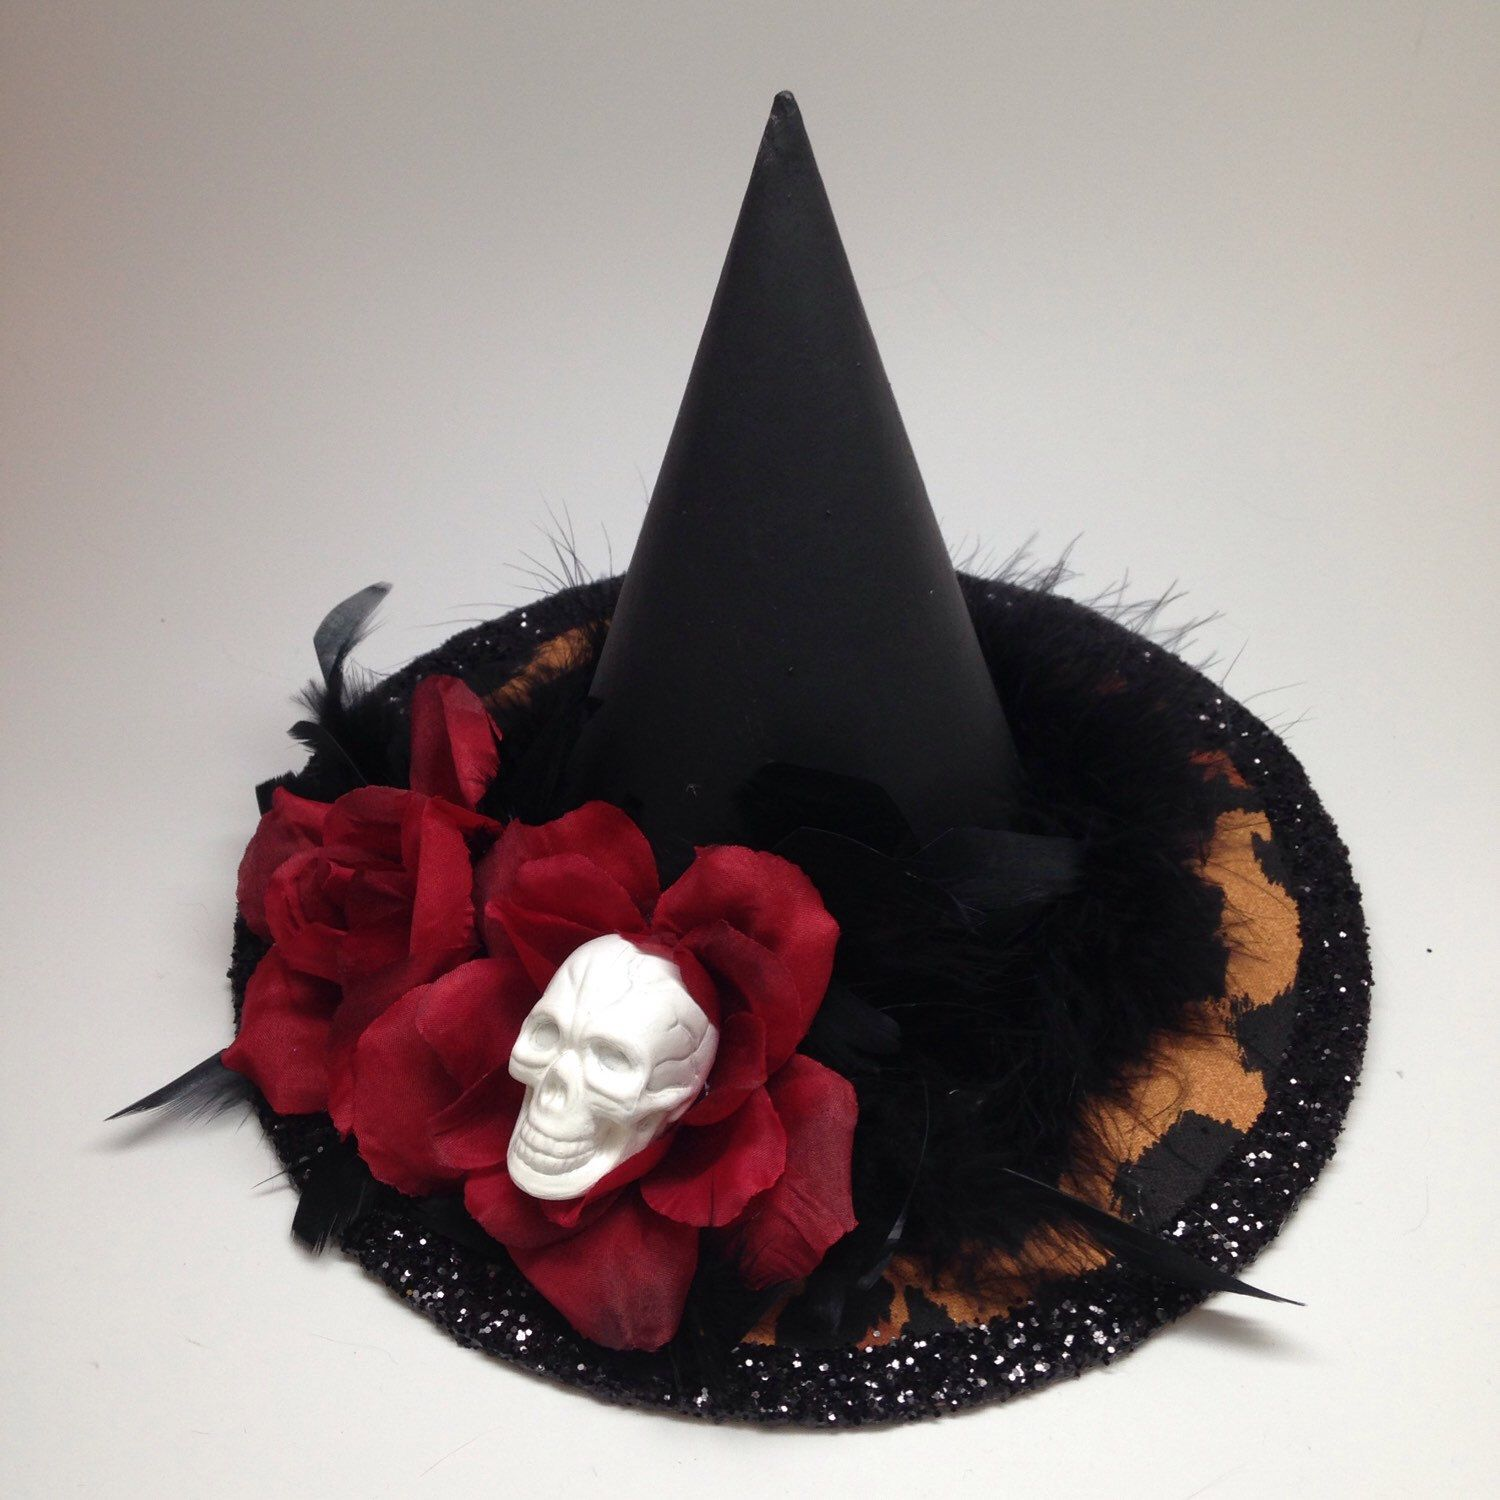 Leopard Print Halloween Home Decor Centerpiece Witch's Hat with Red Roses, White Skull and Black Feathers by SkullysSwag on Etsy https://www.etsy.com/listing/243654359/leopard-print-halloween-home-decor